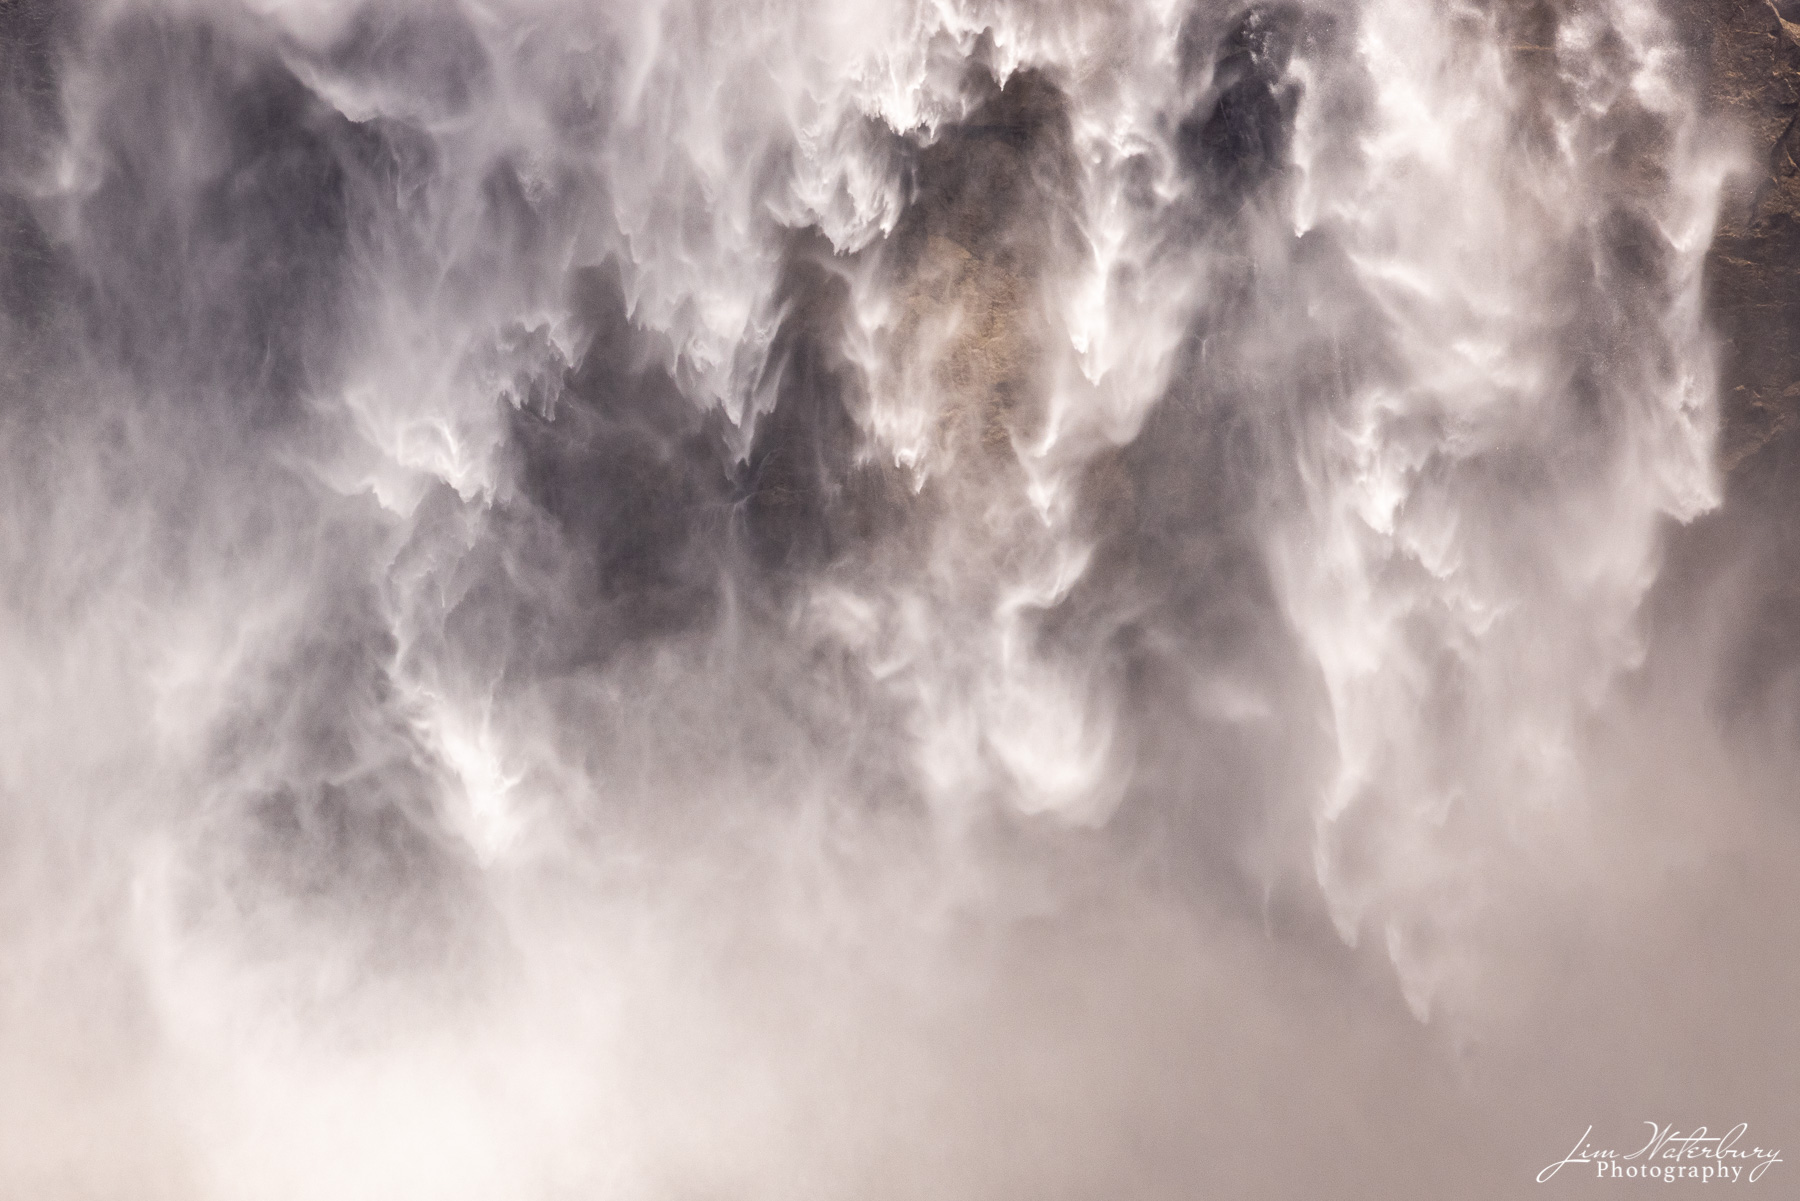 Abstract detail of mist and spray, Upper Yosemite Falls